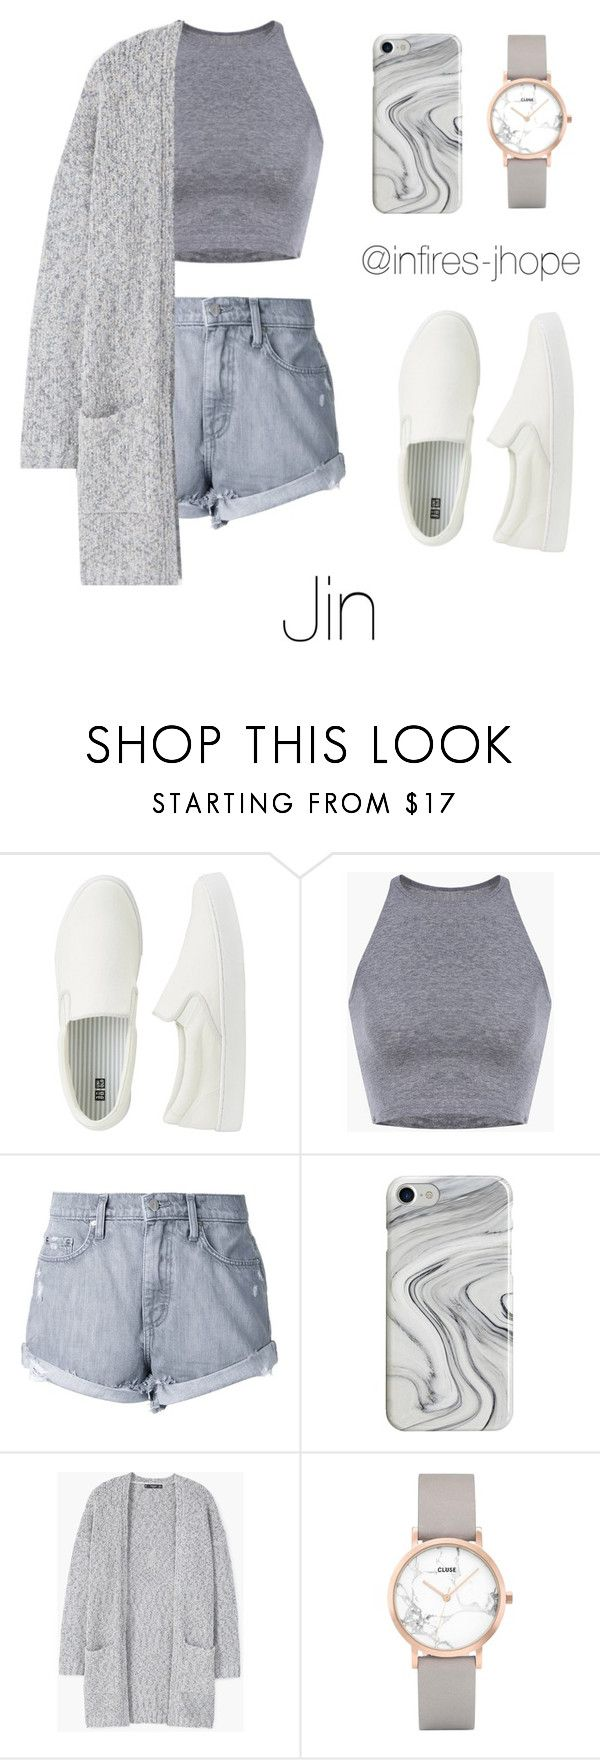 """""""Grey Outfit with Jin"""" by infires-jhope ❤ liked on Polyvore featuring Uniqlo, Nobody Denim, Recover, MANGO and CLUSE"""